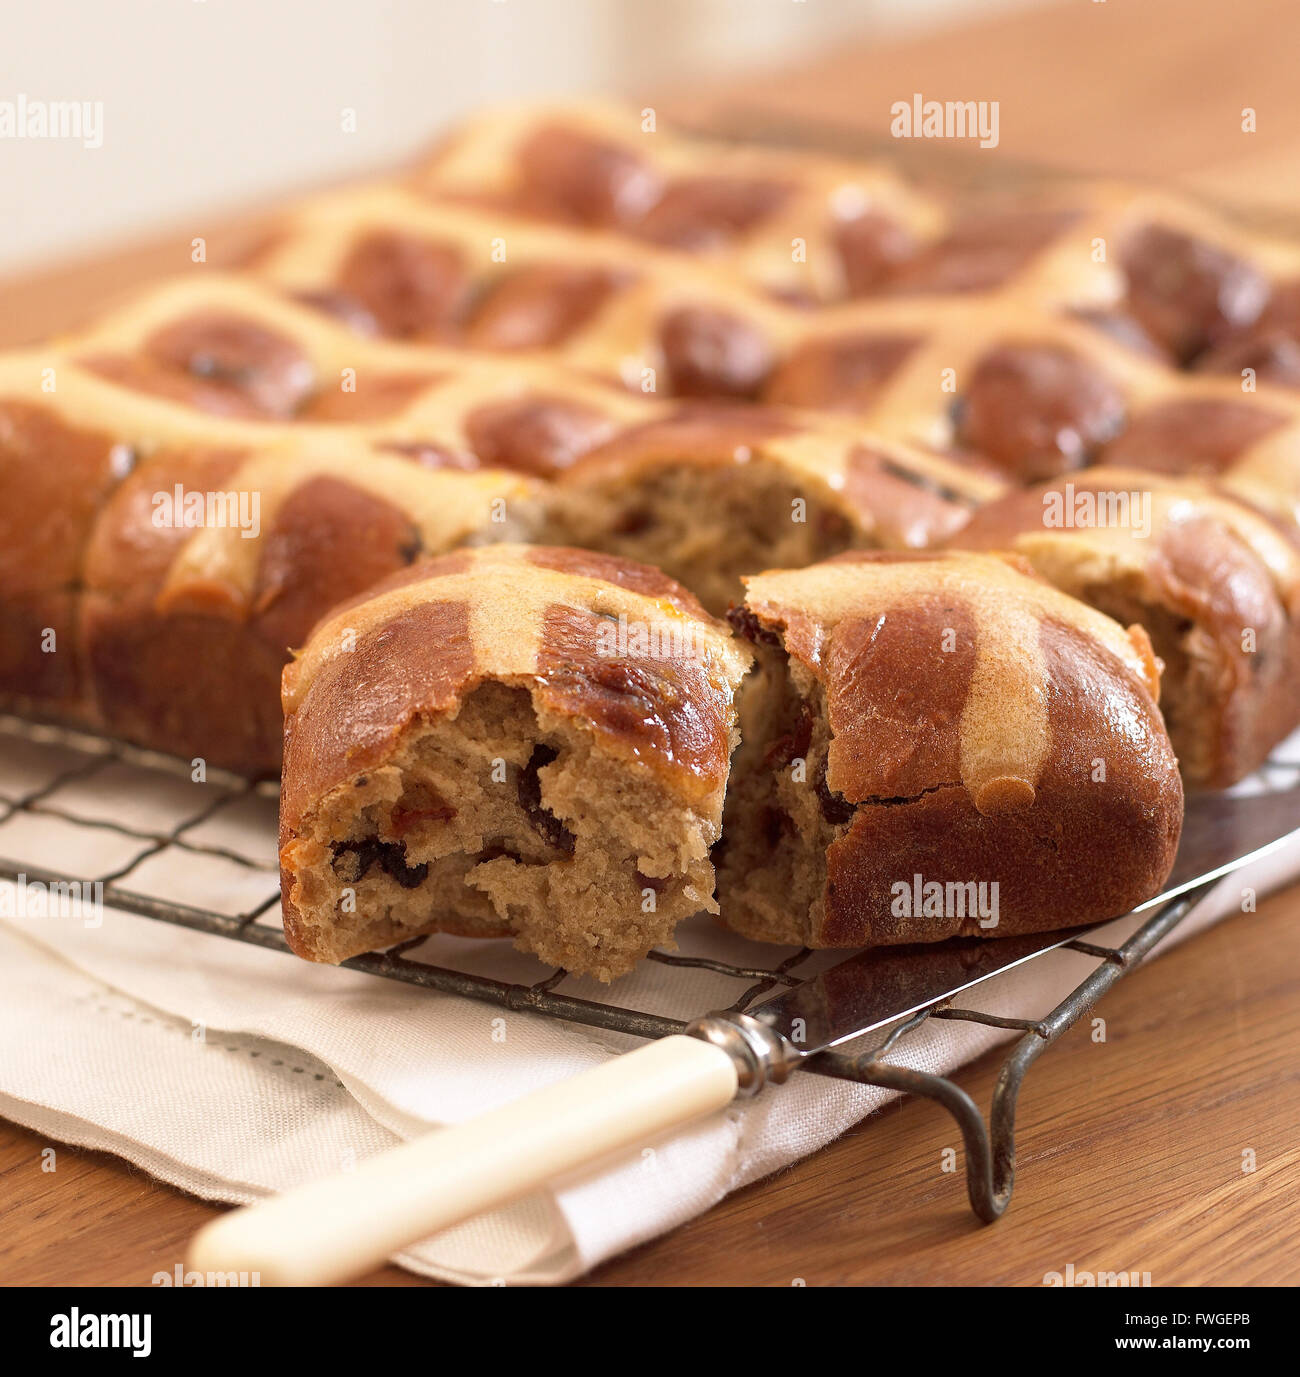 Hot cross buns on a cooling rack. - Stock Image